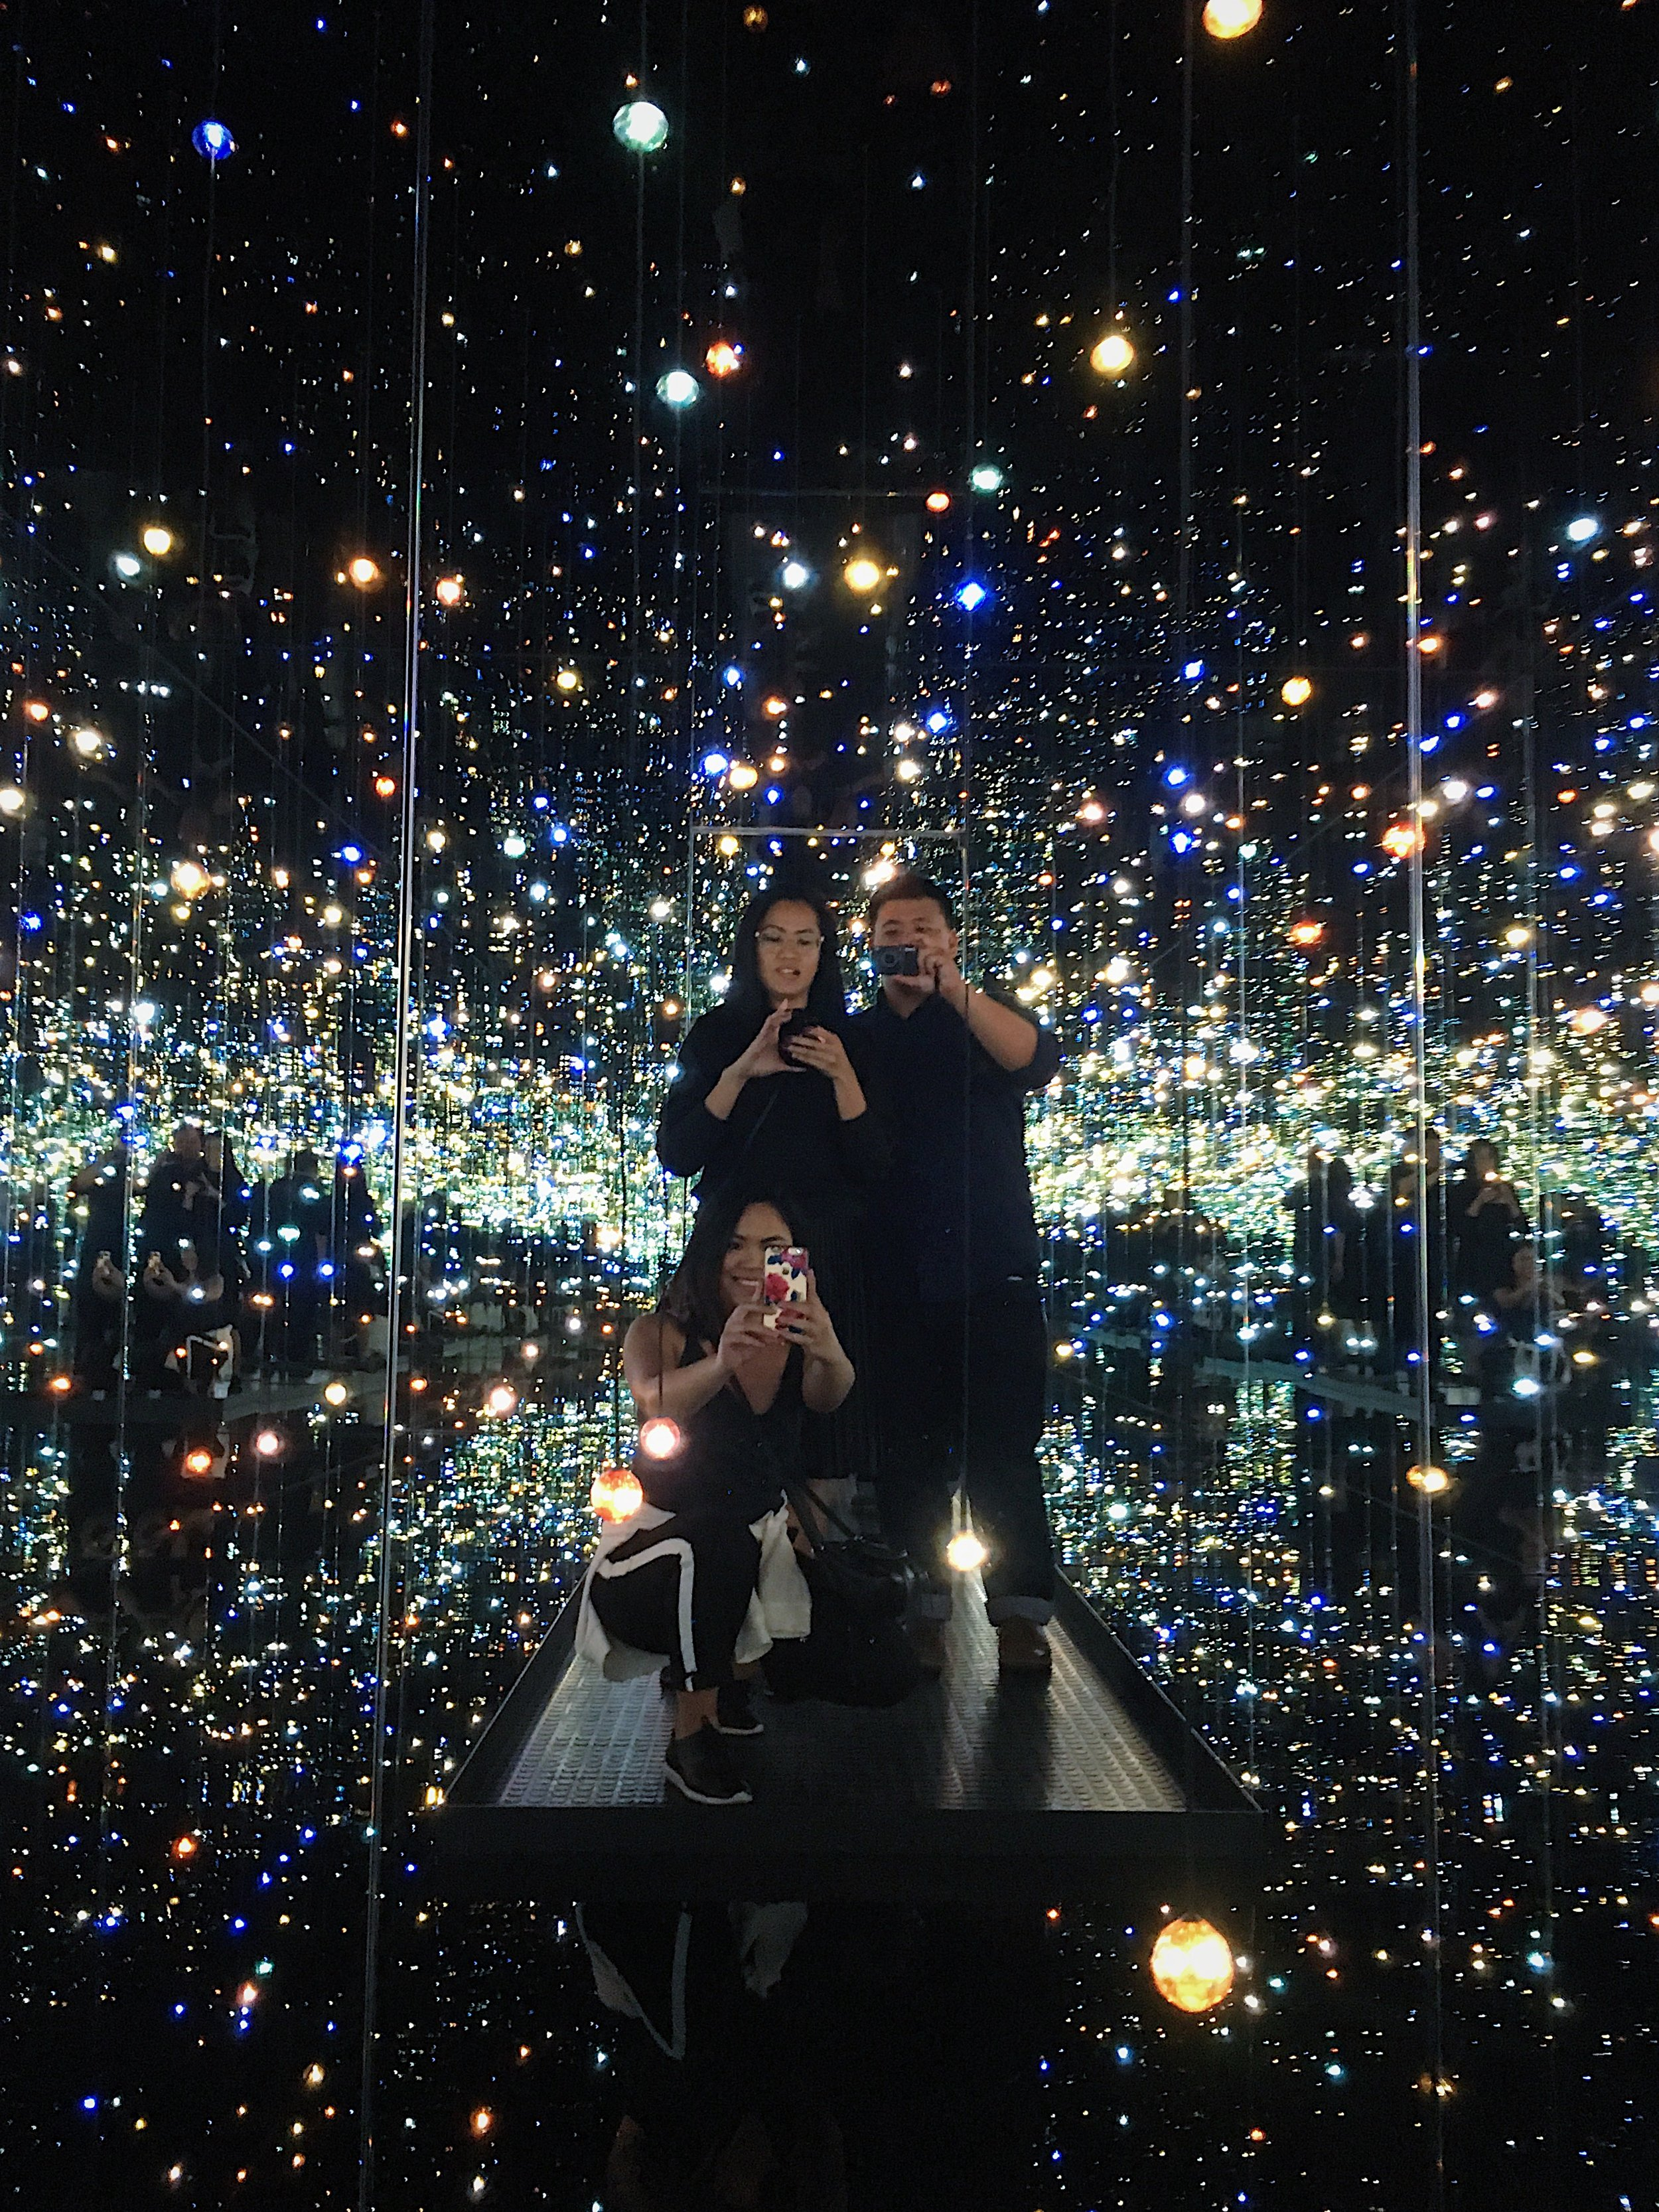 Infinity Mirrored Room -- The Souls of Millions of Light Years Away (2013)